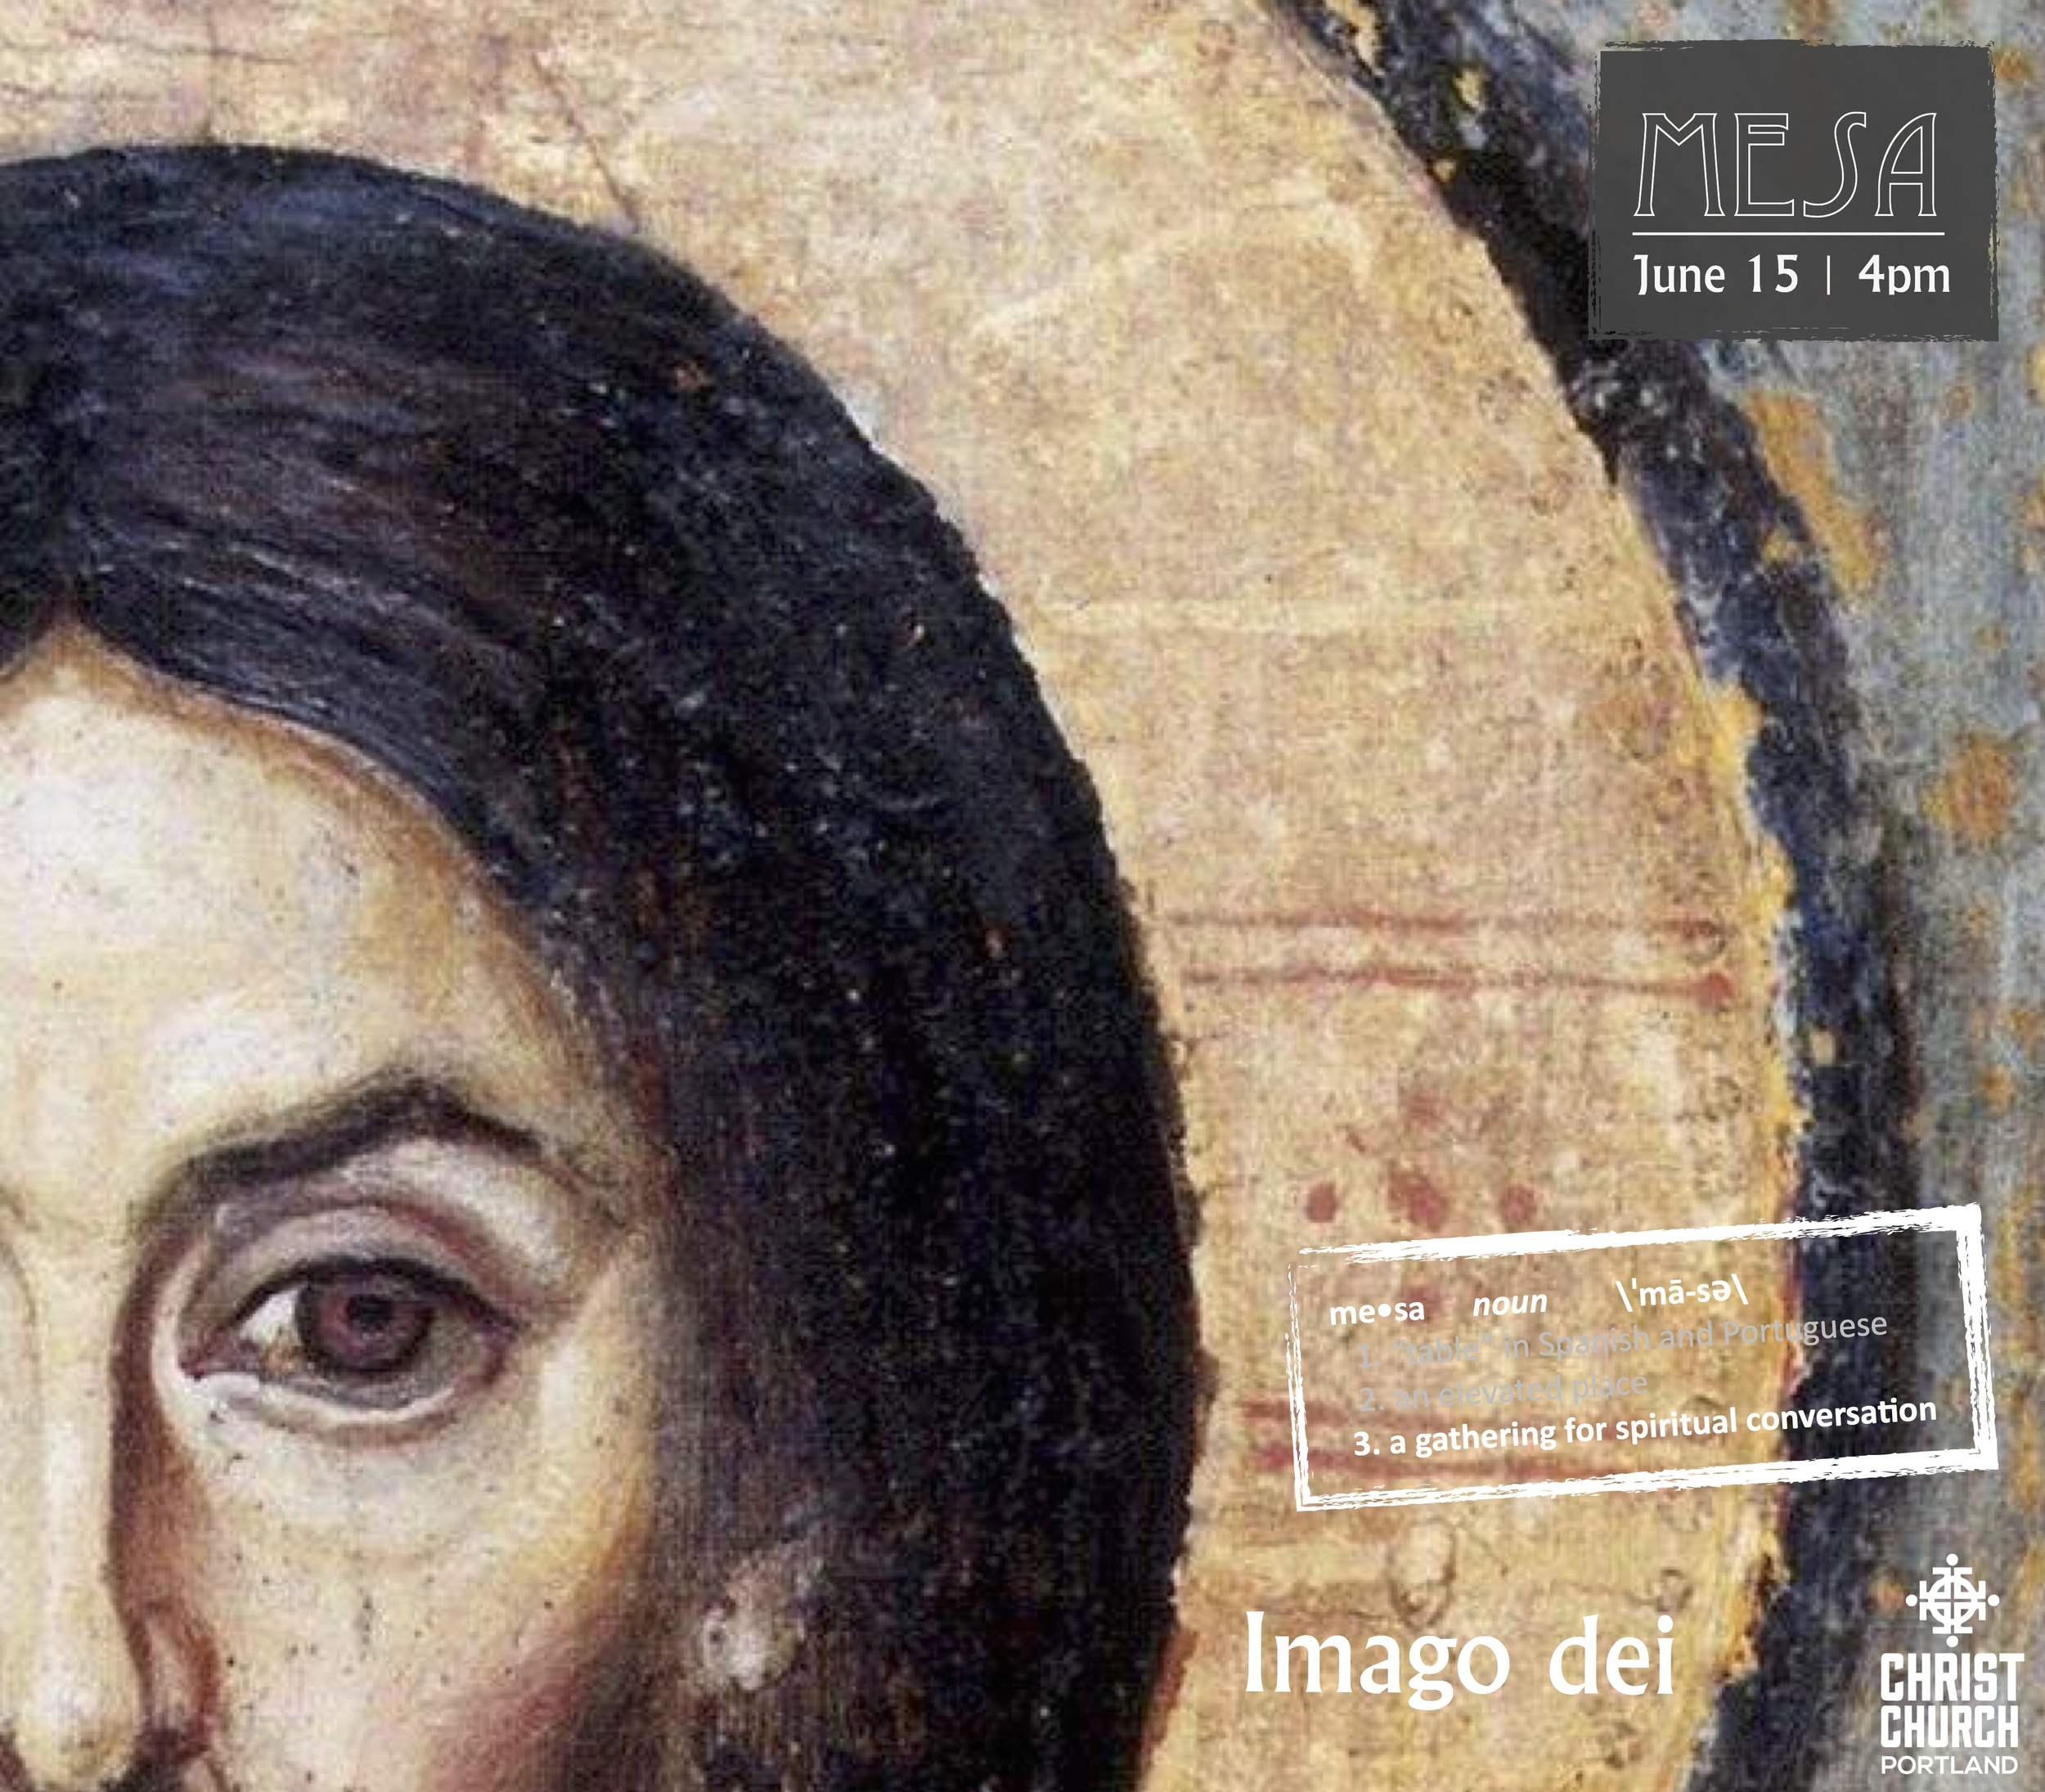 """artwork adapted from the 6th century icon """"Cristo Pantocrator"""" found at St. Catherine's monastery in Sinai, Egypt."""